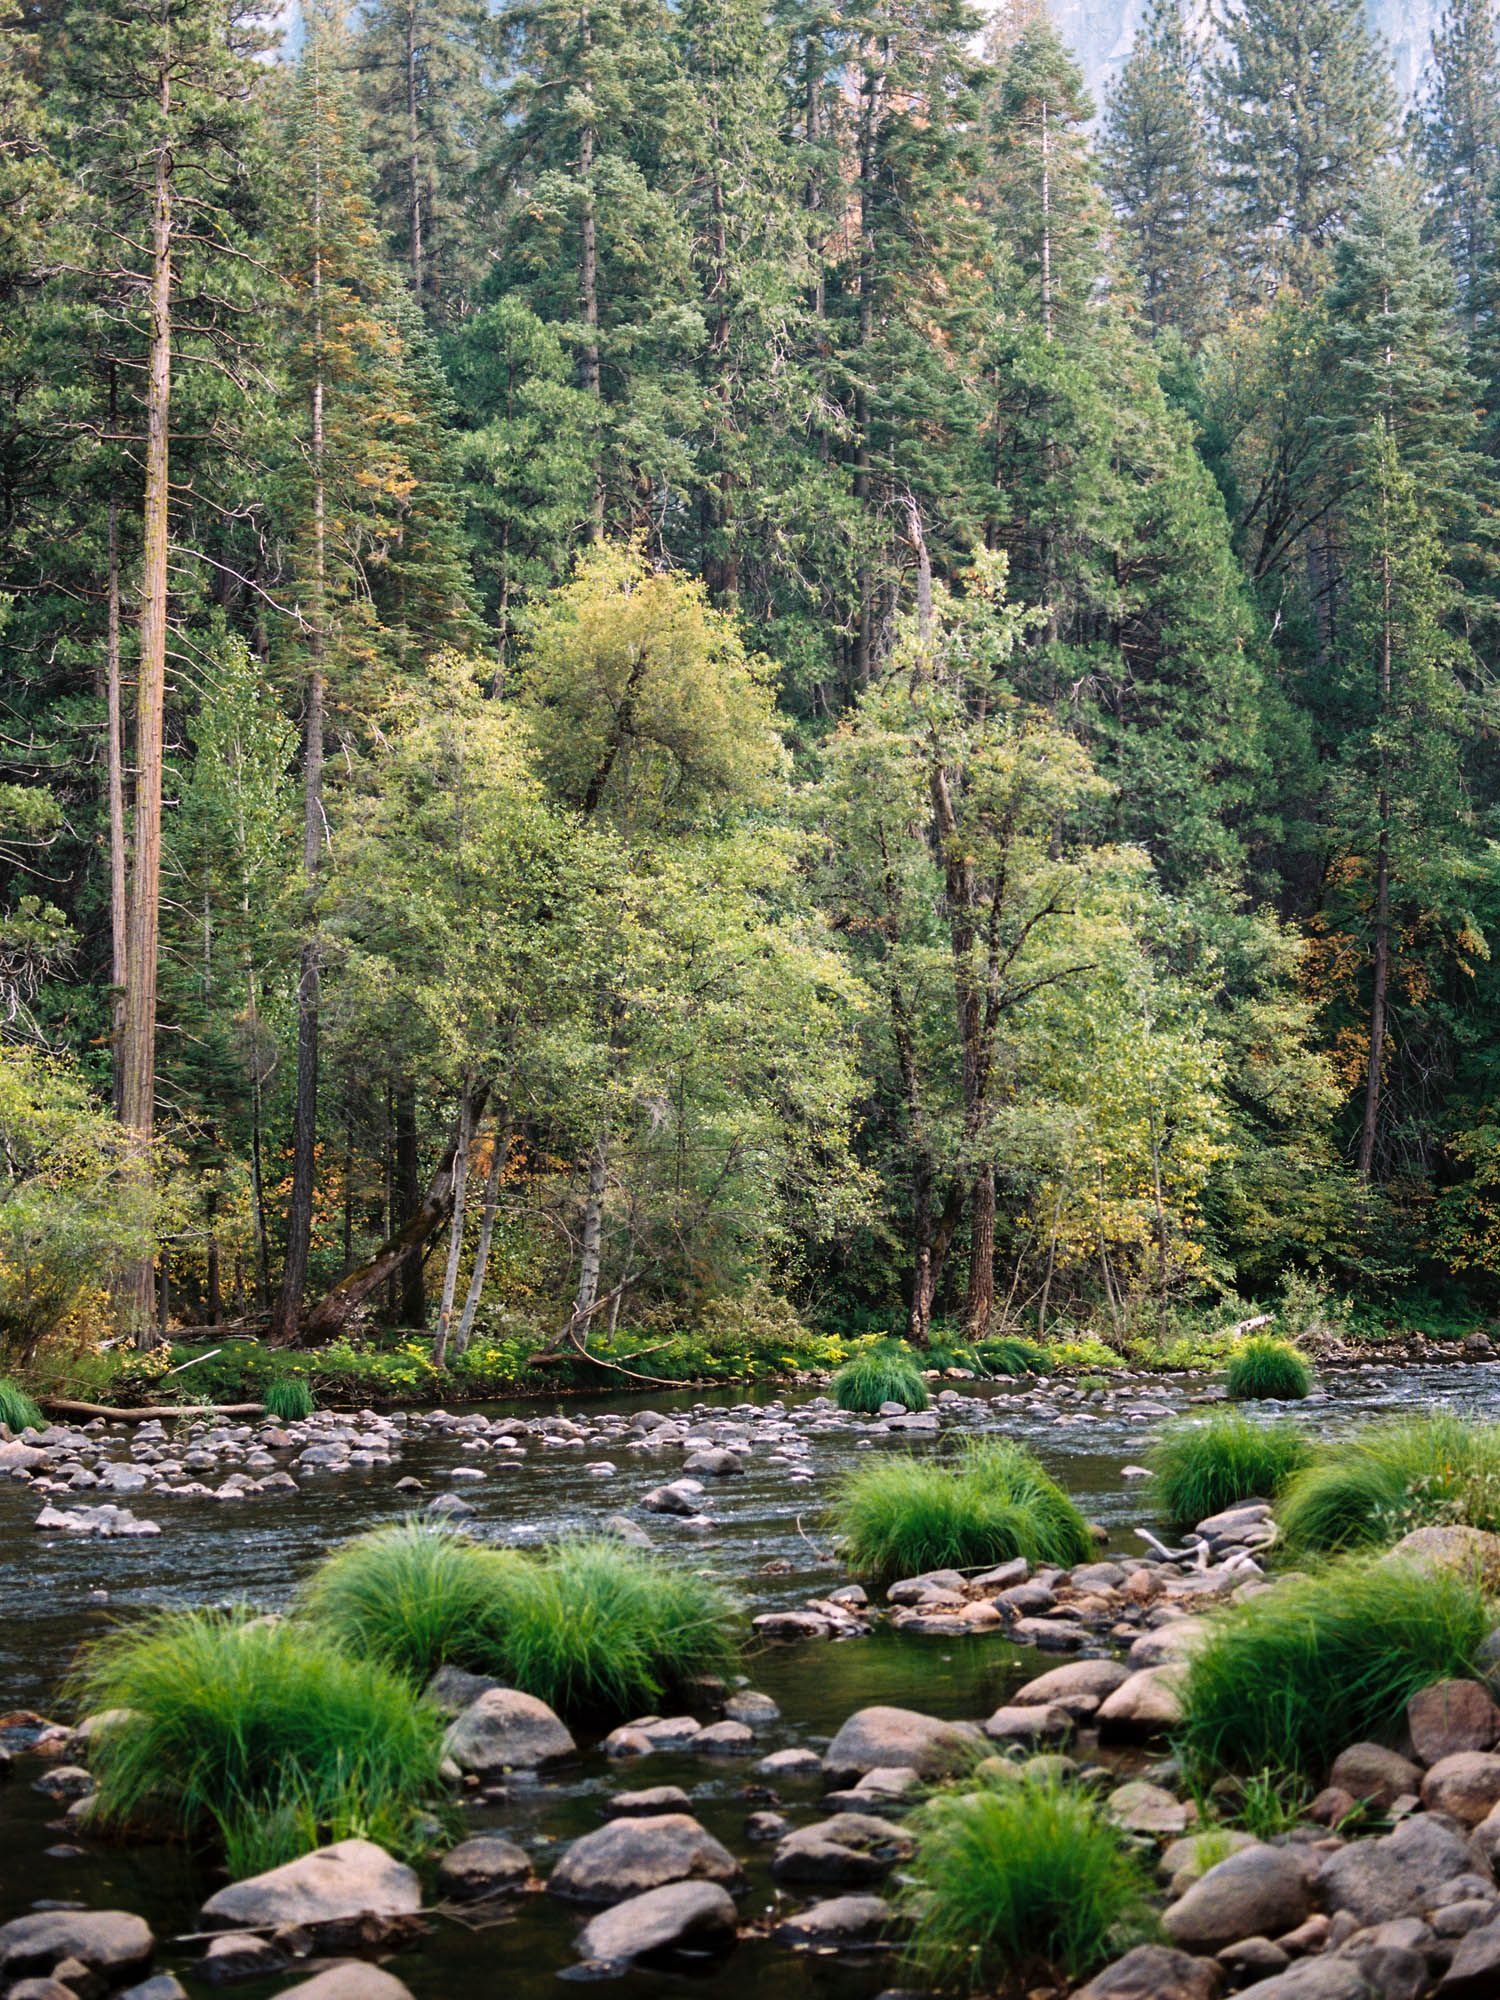 yosemite national park merced river yosemite valley photography on film.jpg